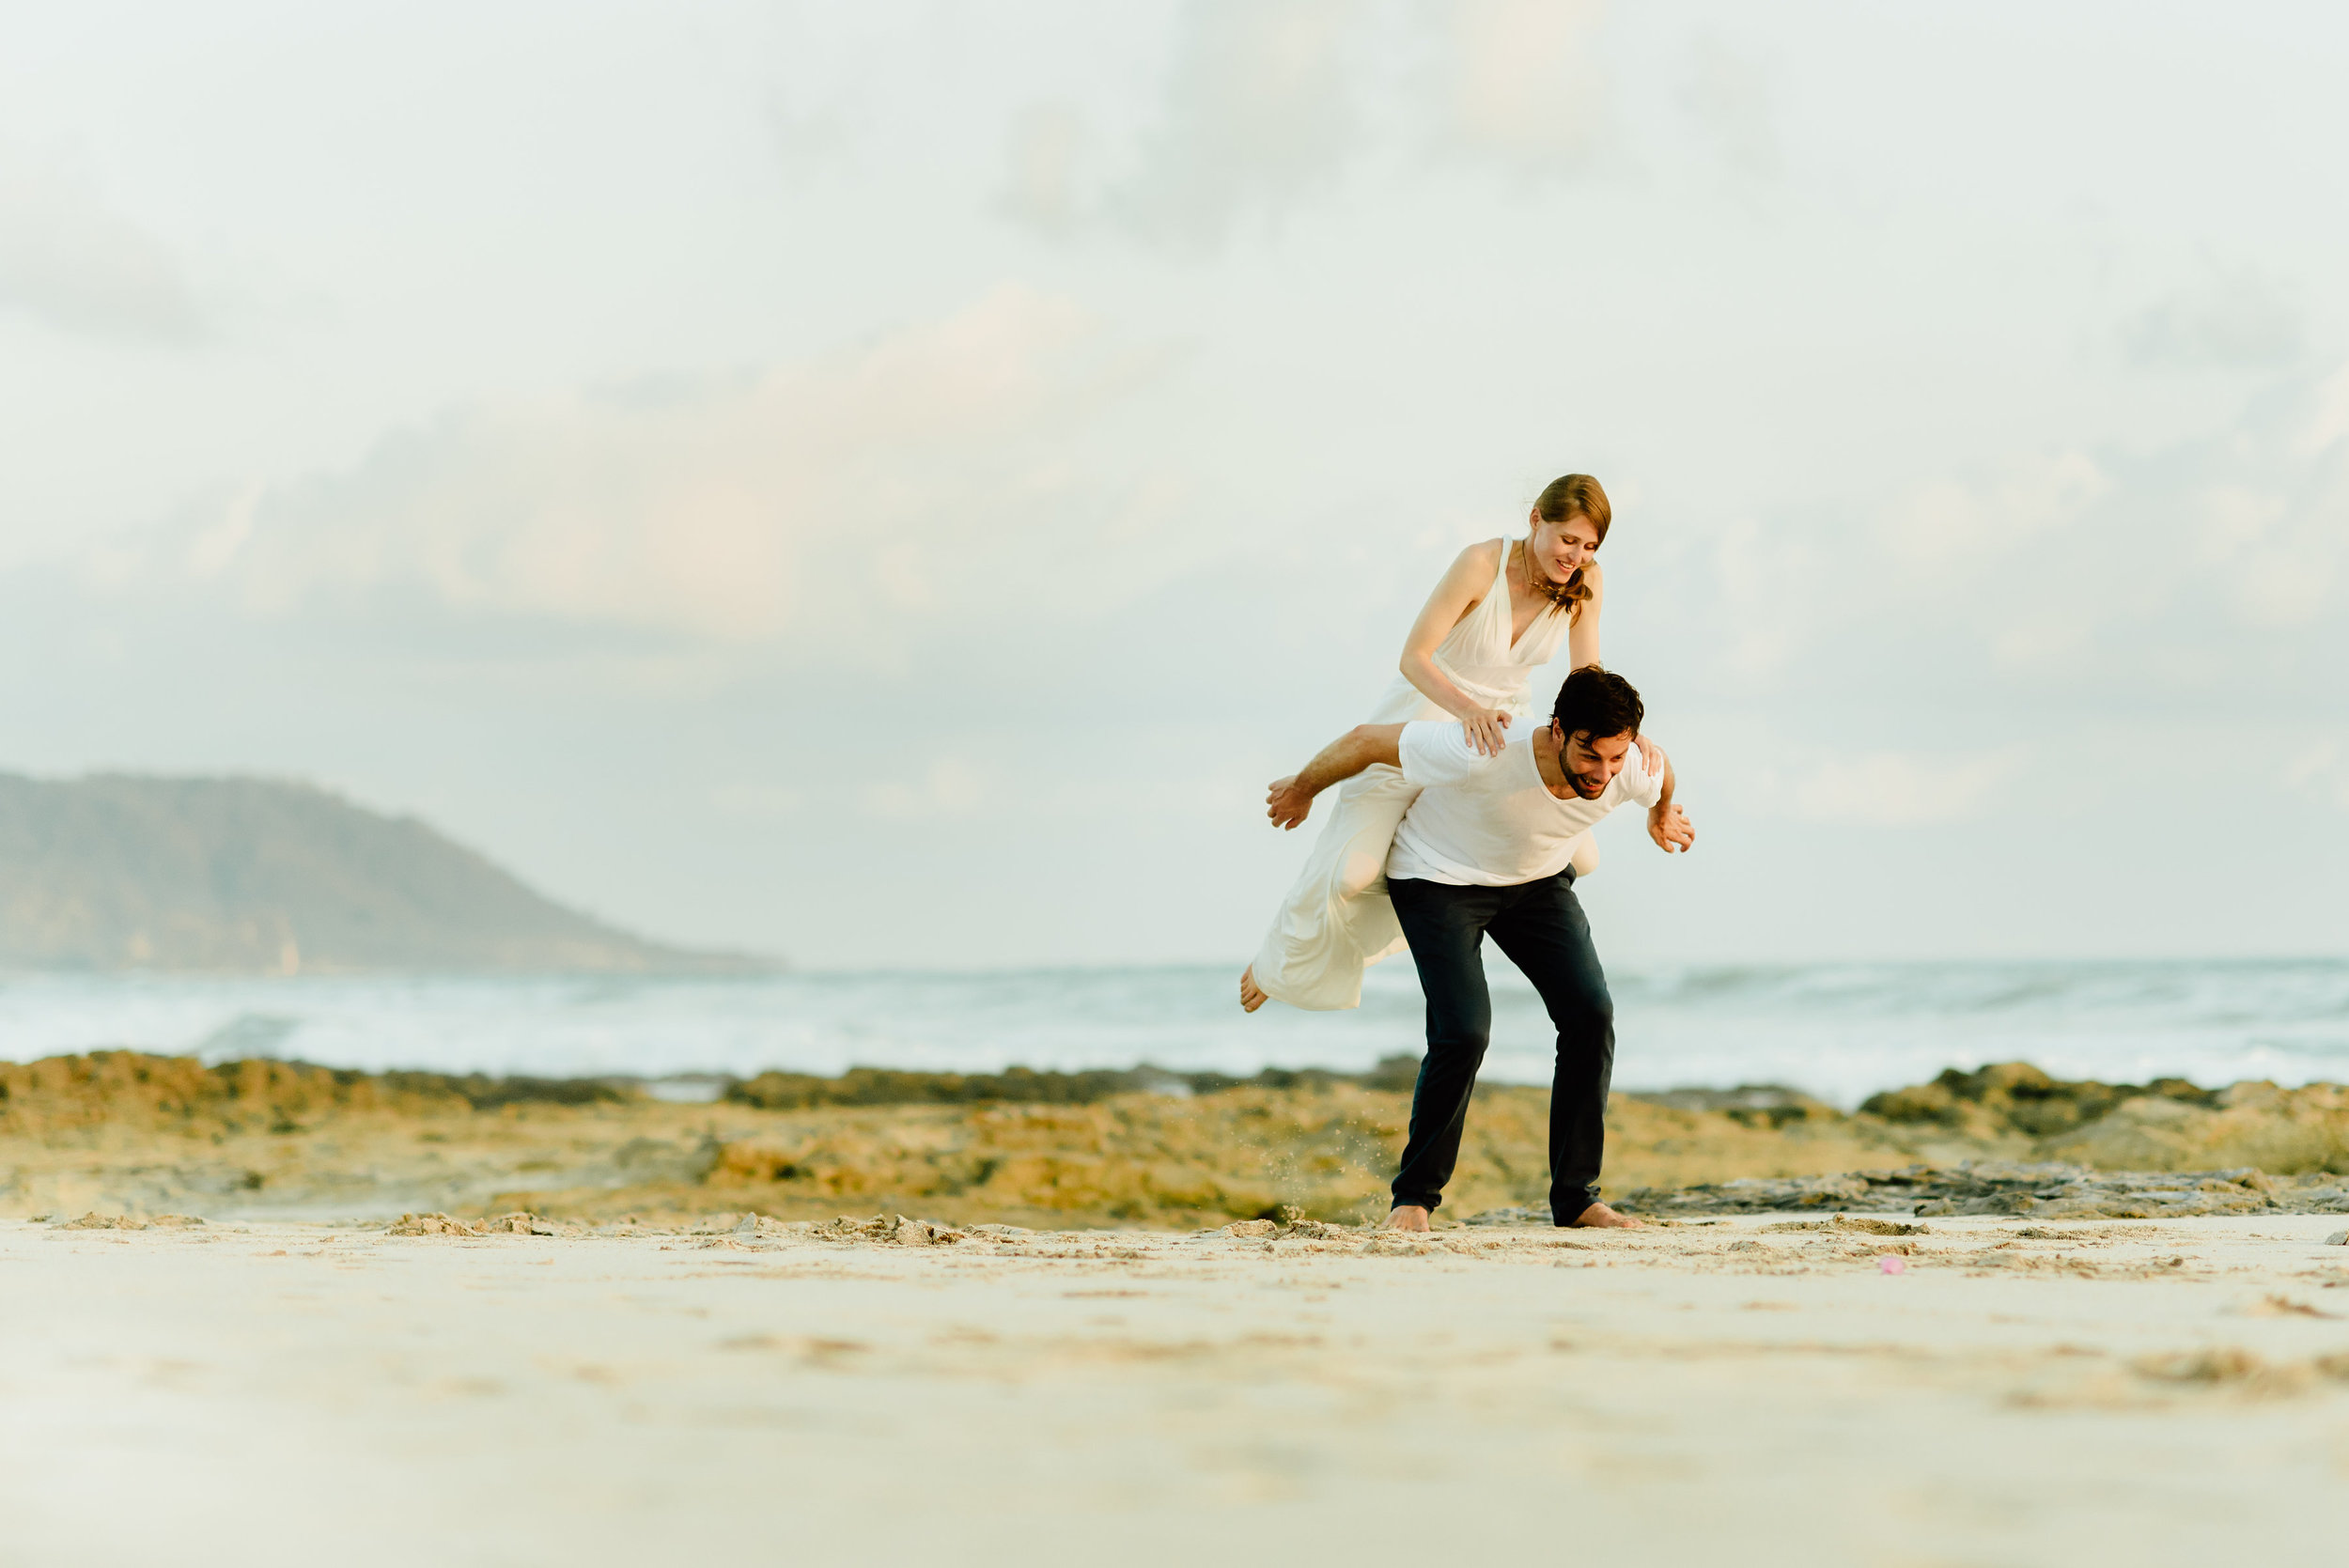 Stefan and Martina might be the cutest bride and groom I have ever seen! I absolutely love their photos from their destination beach elopement on Santa Teresa Beach!  Intimate wedding photography by intimate Costa Rica destination wedding photographer, Maddie Mae.